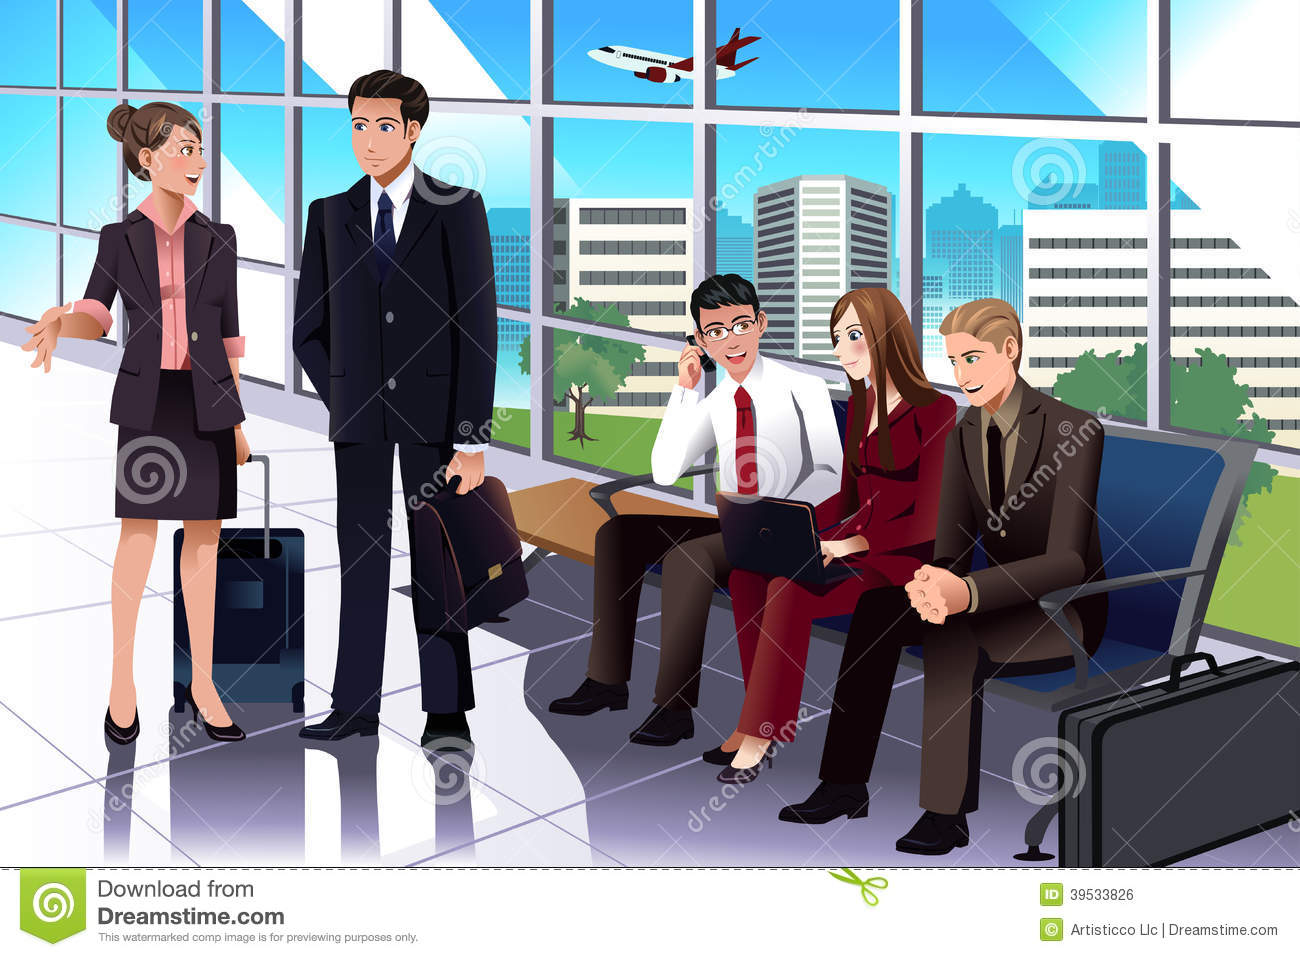 Free 3d Room Planner Business People Waiting In The Airport Stock Vector